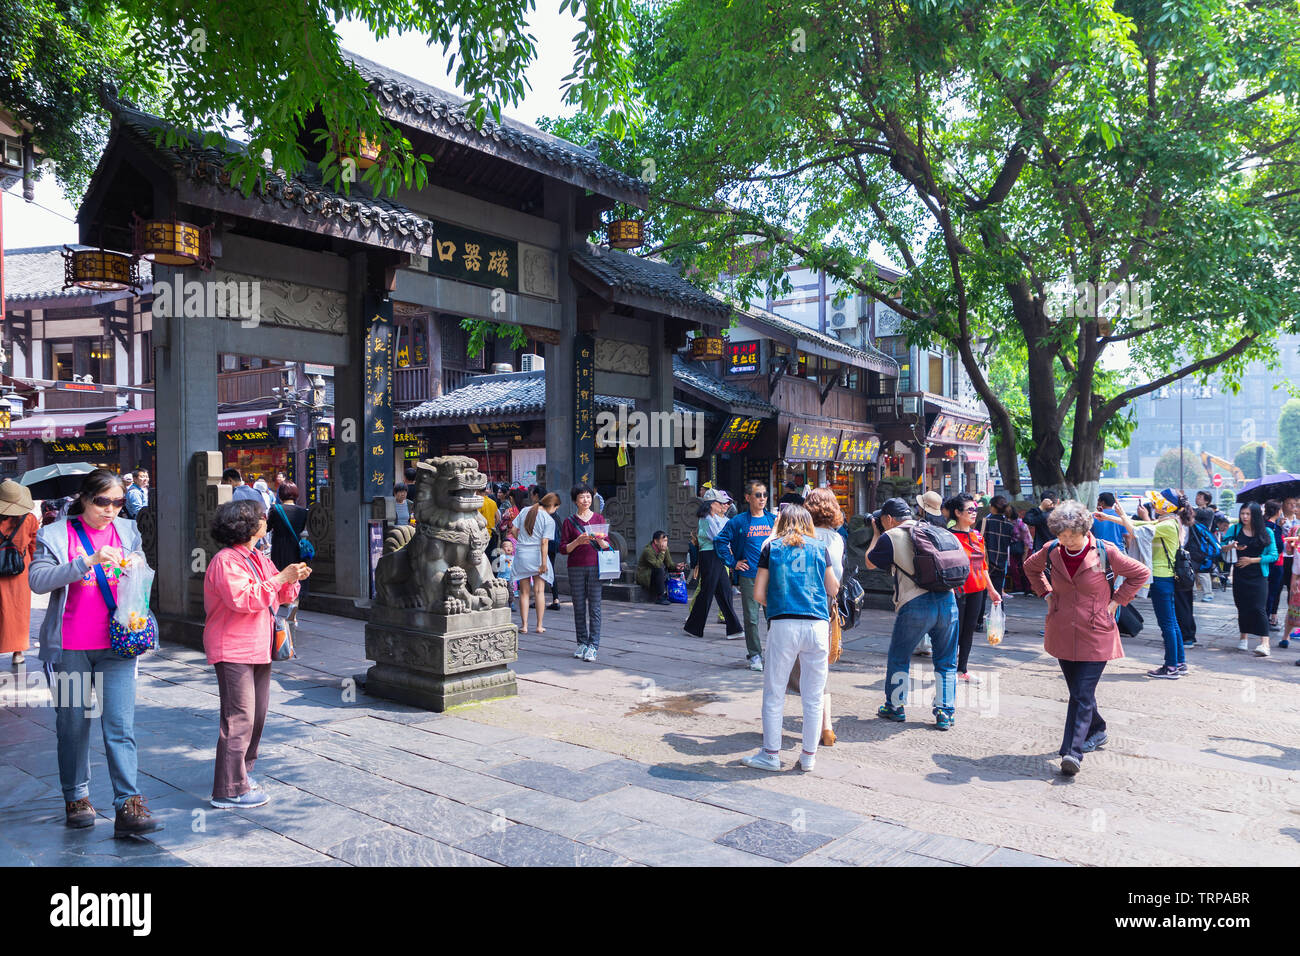 Tourists are walk for shopping in Ciqikou ancient town, a popular travel destination. - Stock Image